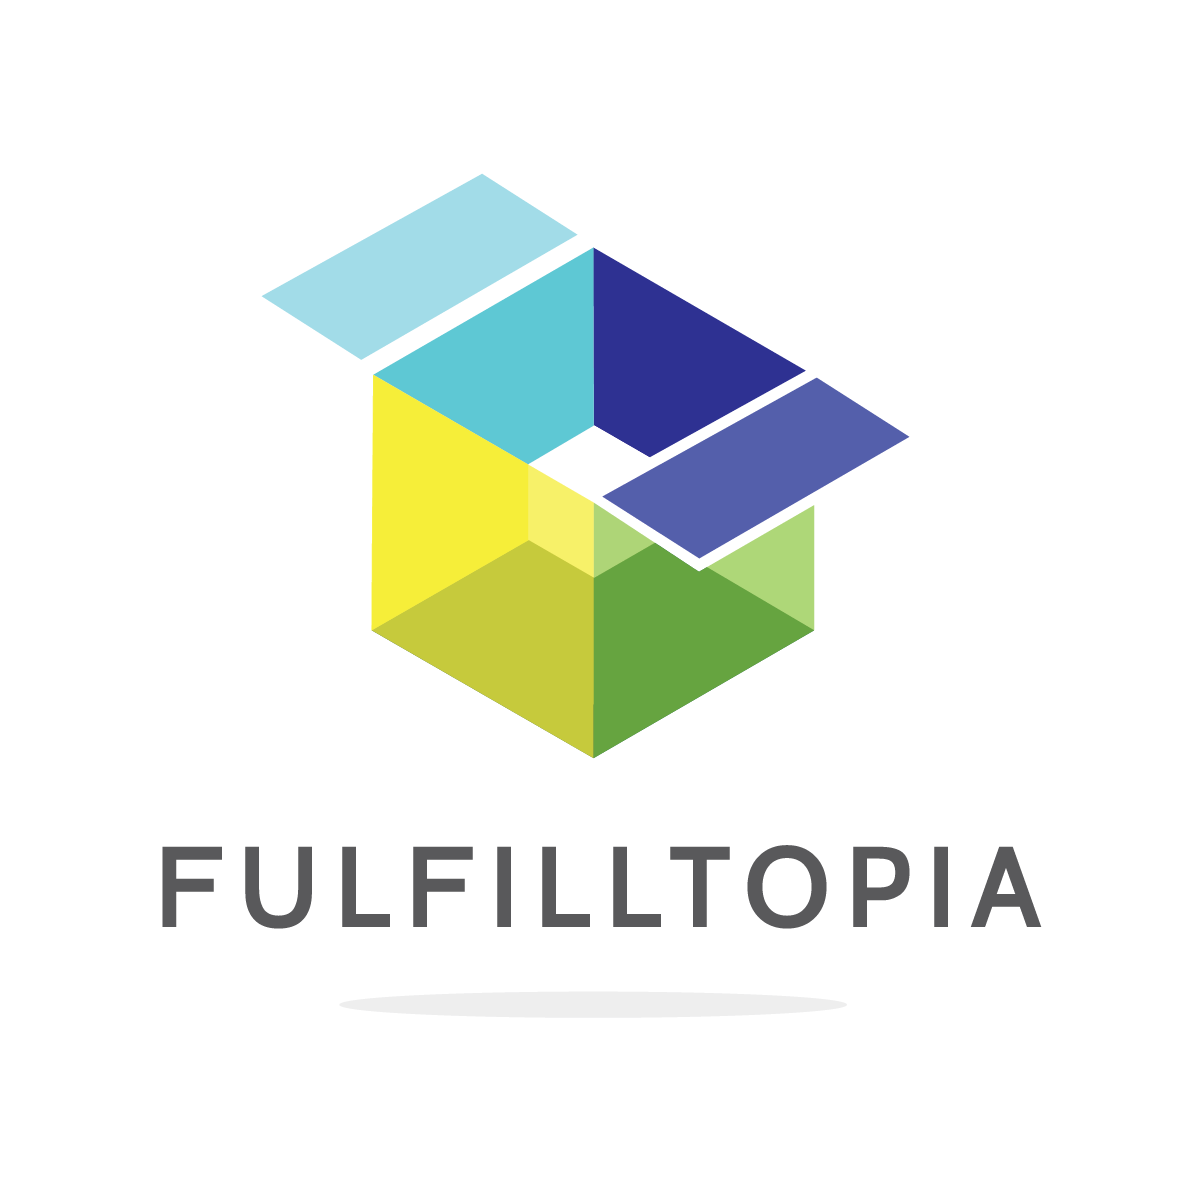 Fulfilltopia logo